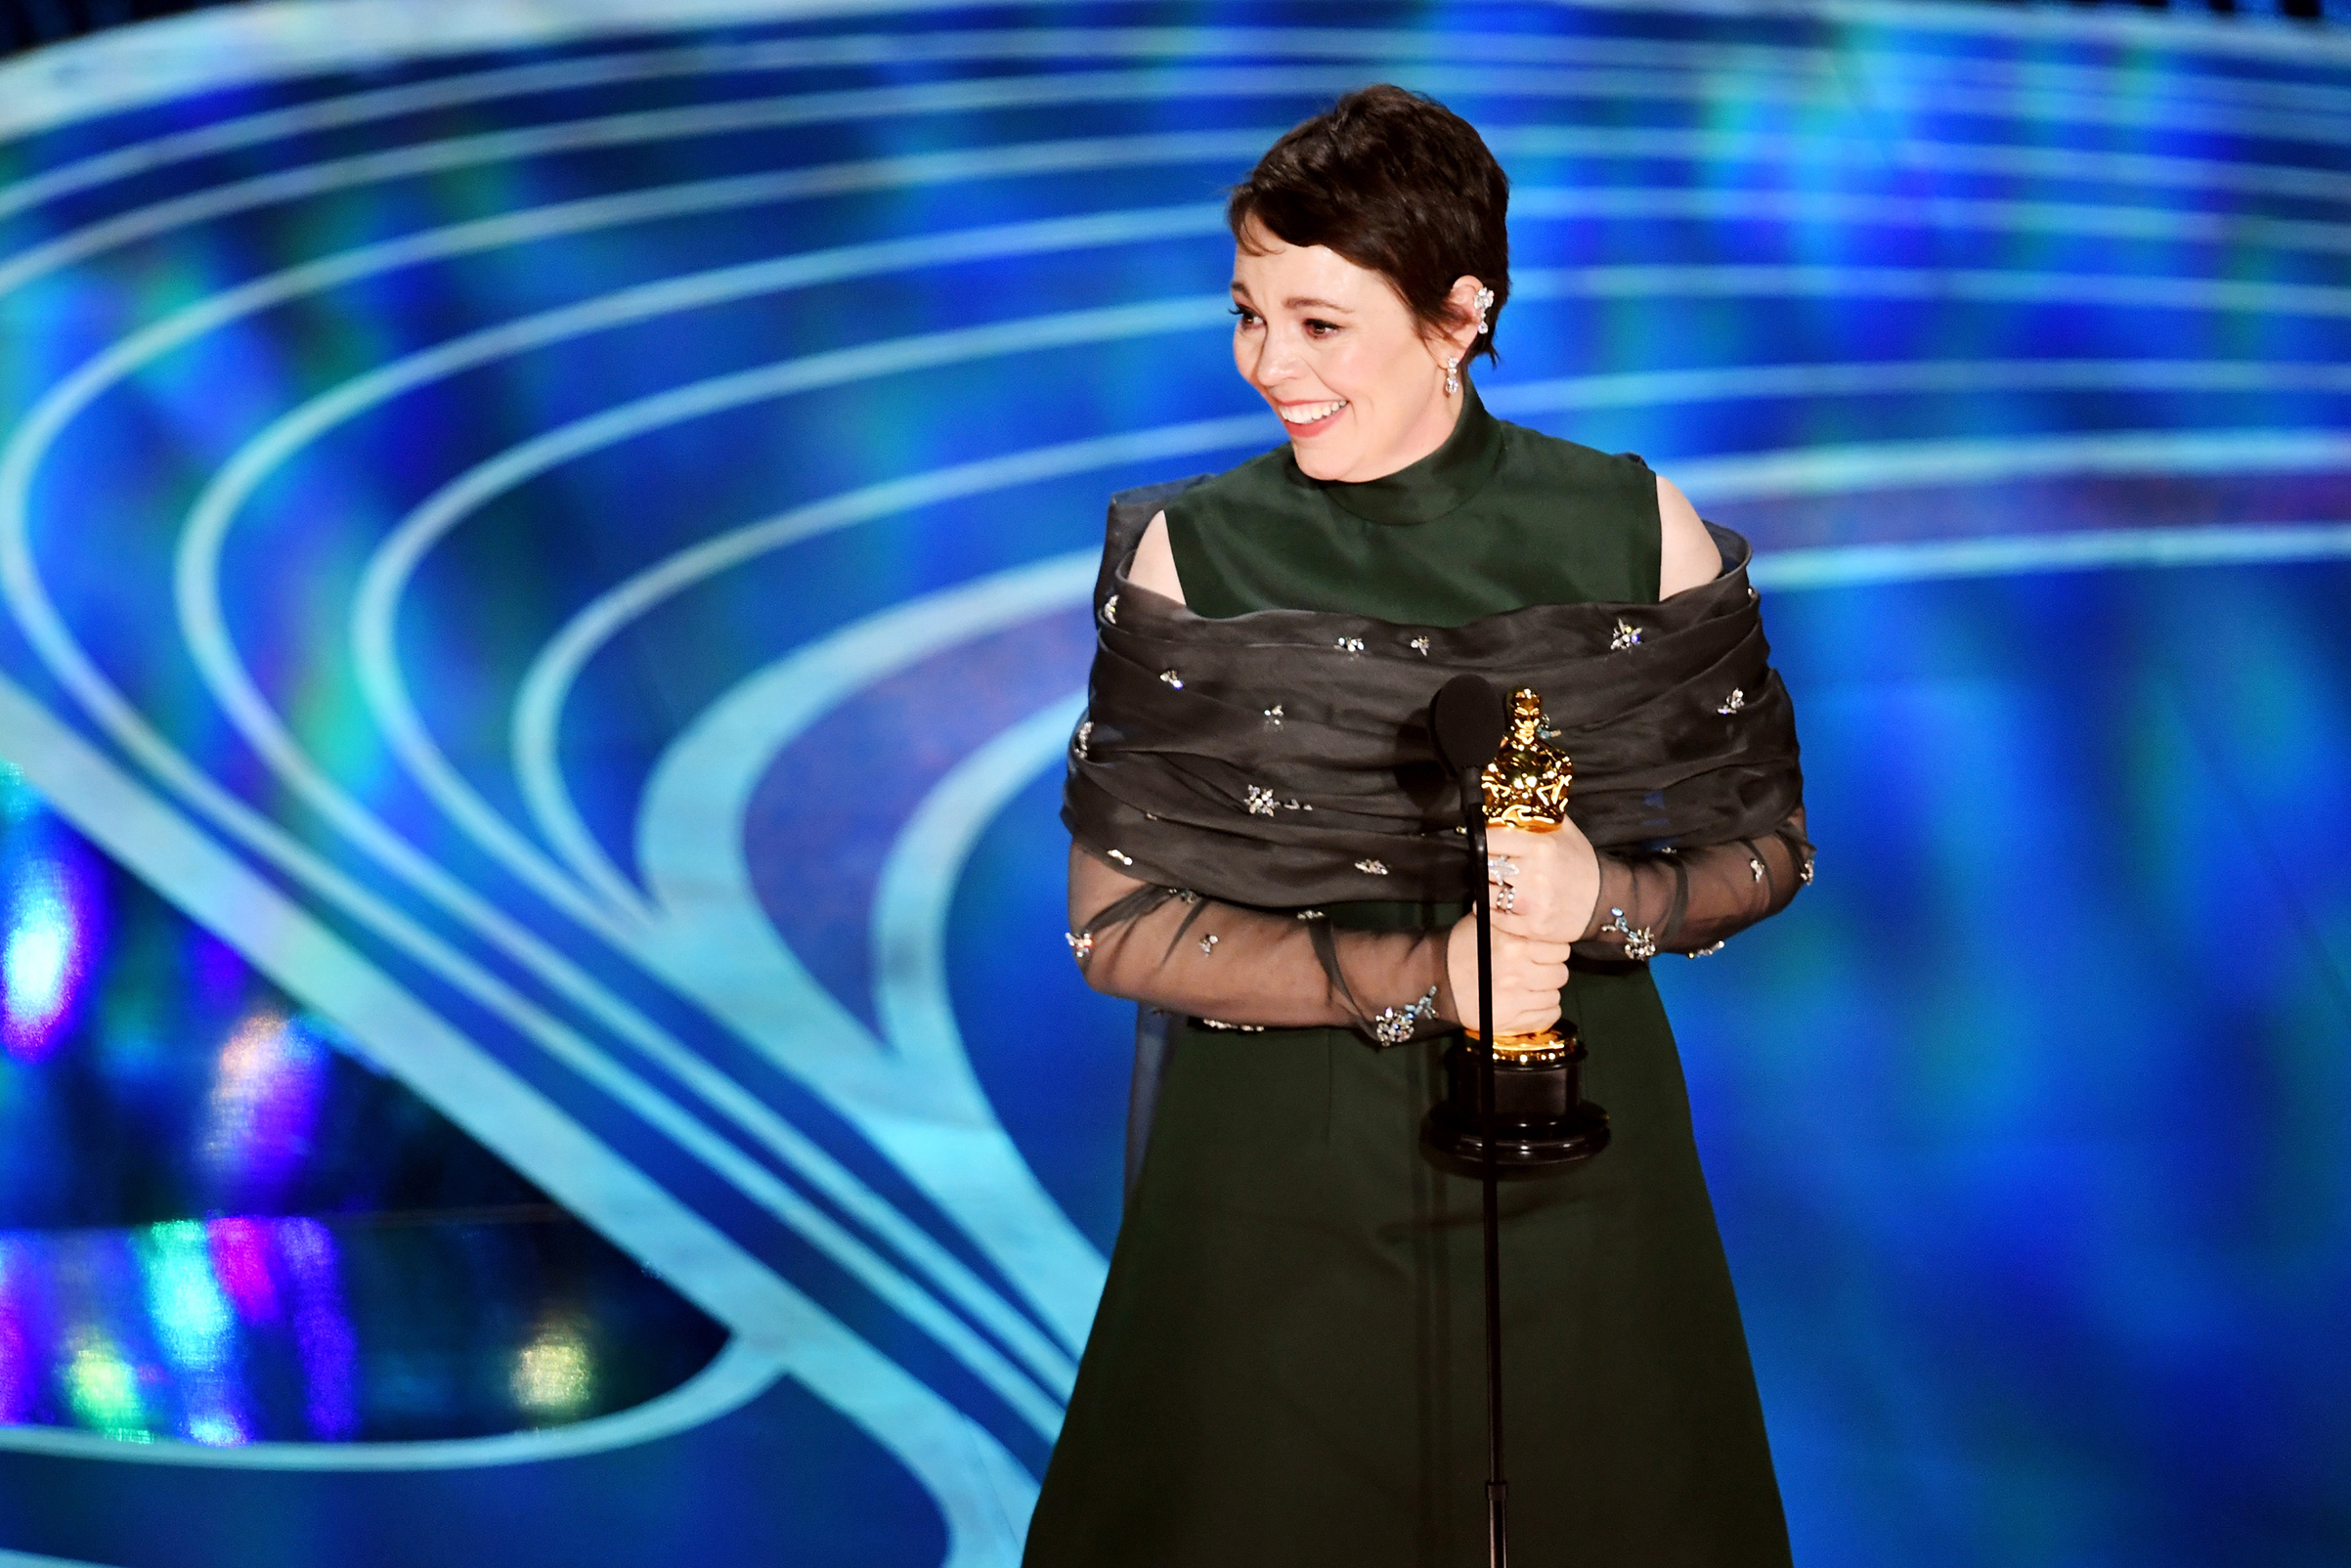 Olivia Colman accepts the Actress in a Leading Role award for 'The Favourite' onstage during the 91st Annual Academy Awards at Dolby Theatre on Feb. 24, 2019.